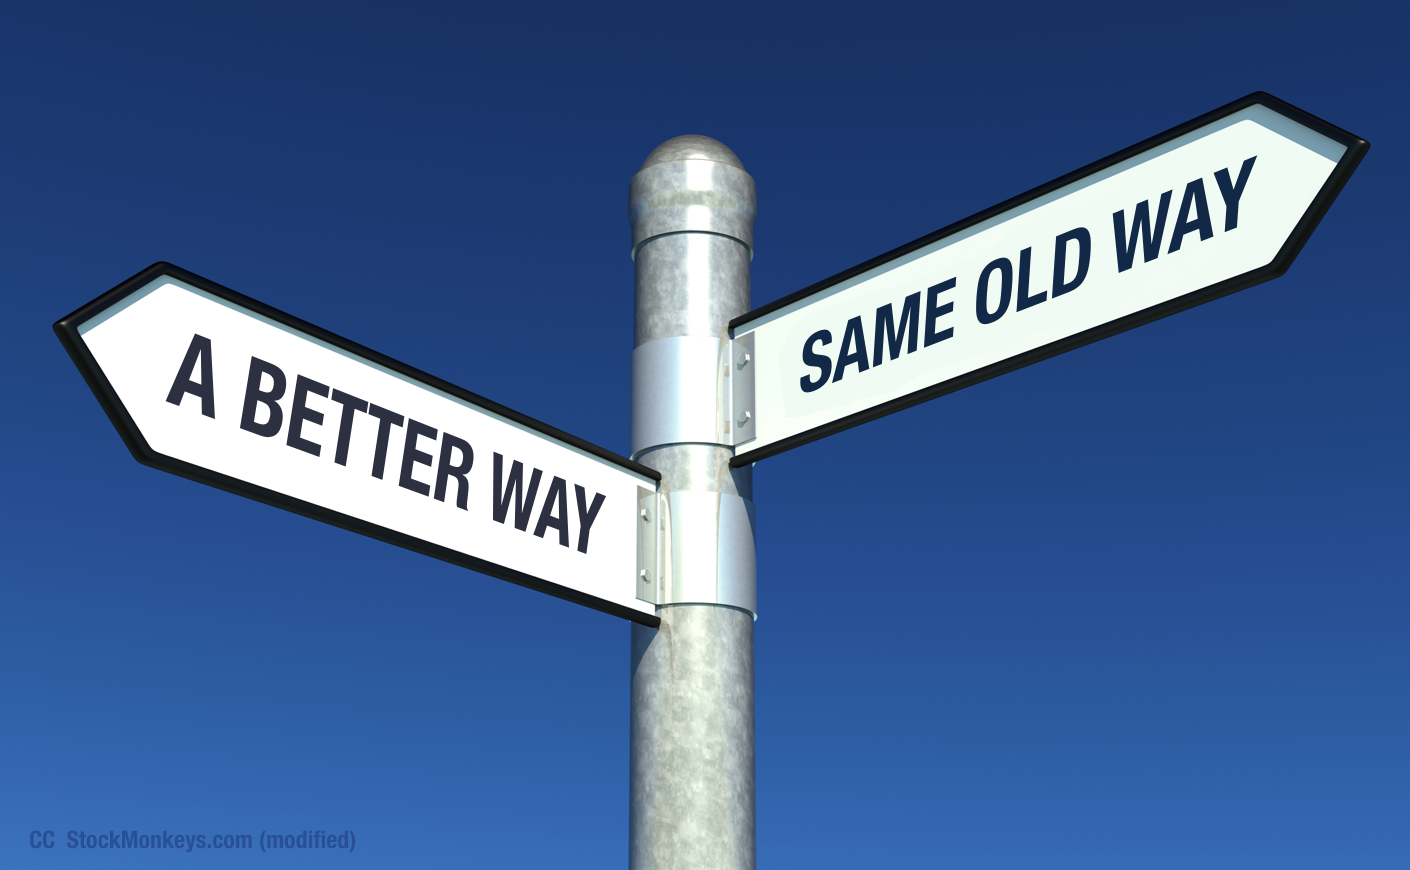 Crossroads: Same old way or a better way. cc StockMonkeys.com (modified)